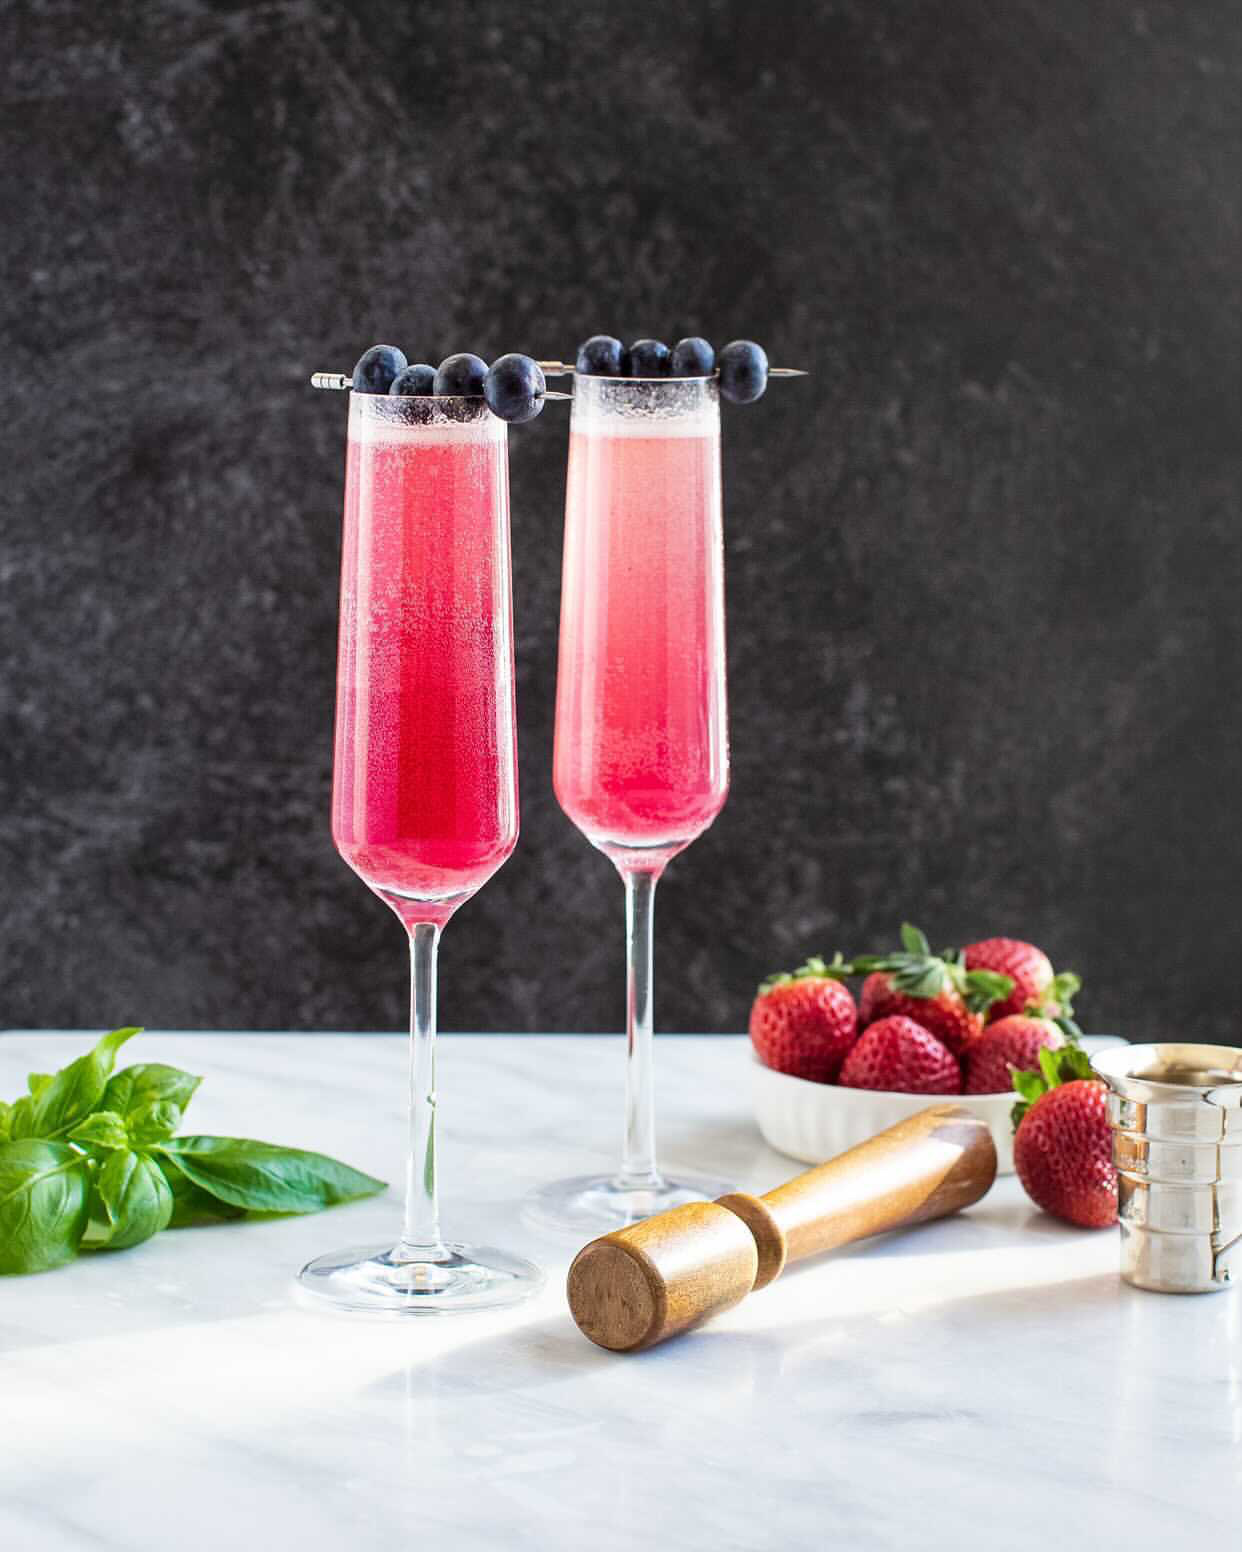 2 blueberry basil french 75 cocktails with a bowl of strawberries